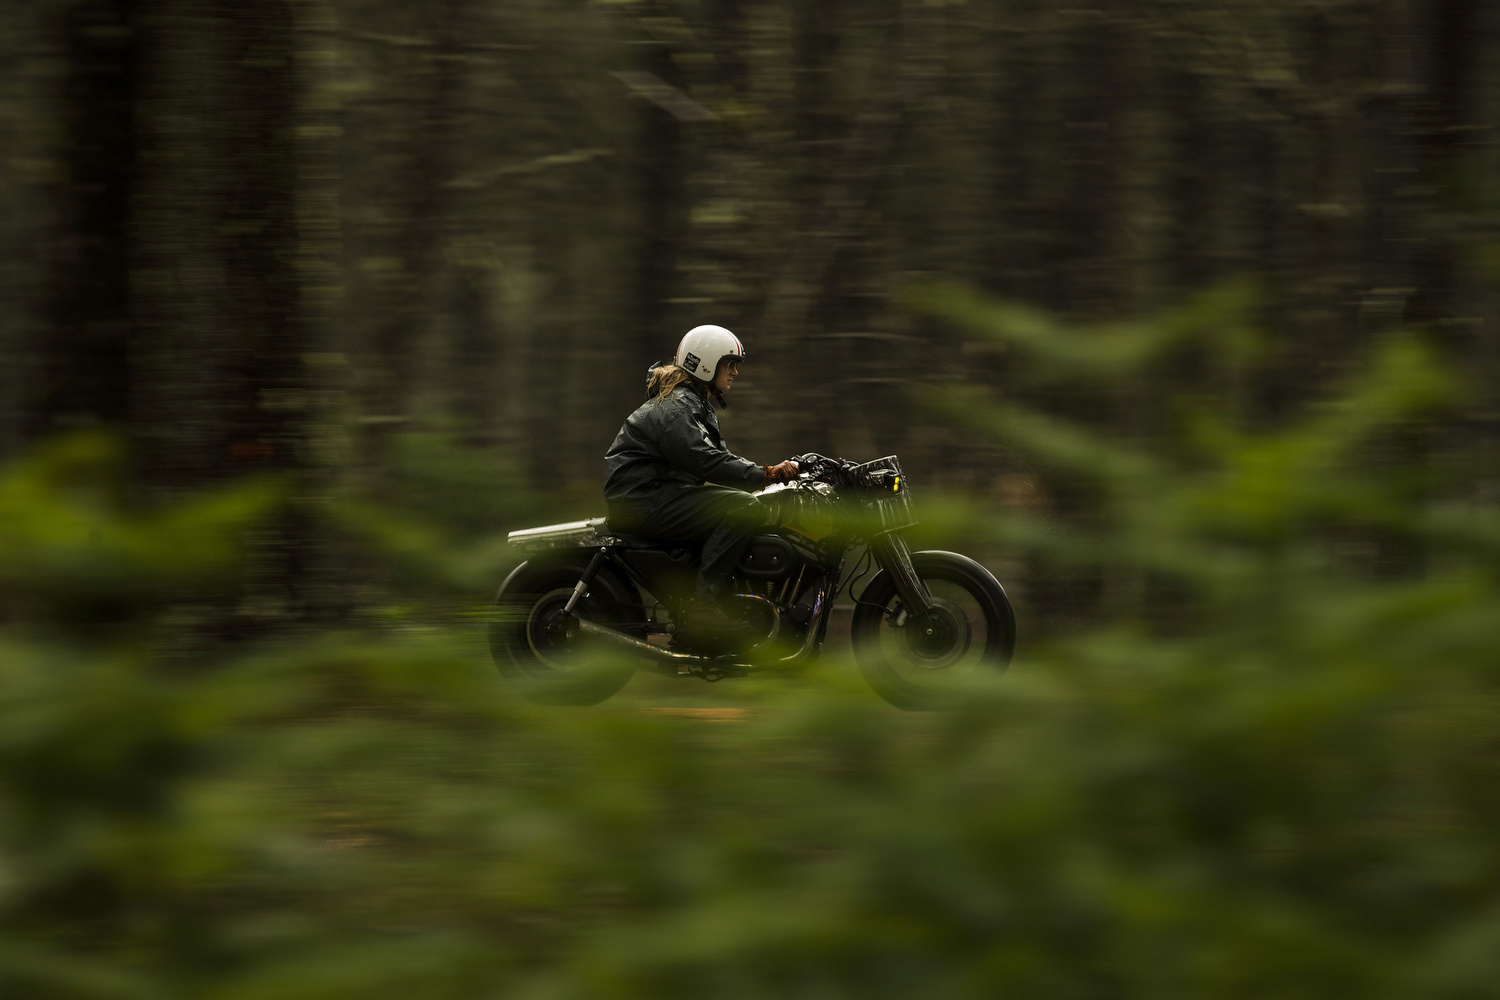 El Solitario's co-founder  Valeria Líbano  drives the  Malo/Bueno  through  Santa María de Oia forest  on May 1, 2015, in Galician  Rias Baixas , Spain. Ex commodity trader  David Borrás and his wife fashion designer Valeria Líbano founded El Solitario Motorcycles as a personal bet to offer their own style of conceiving motorcycles and the fashion market related with them. Malo/Bueno is the customization of a 1200cc  Harley Davidson Sportster  made with  nickel-plated steel . Cast sculptors, a community trader and a musician have something in common: they have made the passion of customizing motorbikes their own business. Valtoron Sculptured Motorcycles, Café Racer Obsession and El Solitario Motorcycles are the dreams-come-true of the Delgado Brothers, Federico Ruiz and David Borrás.